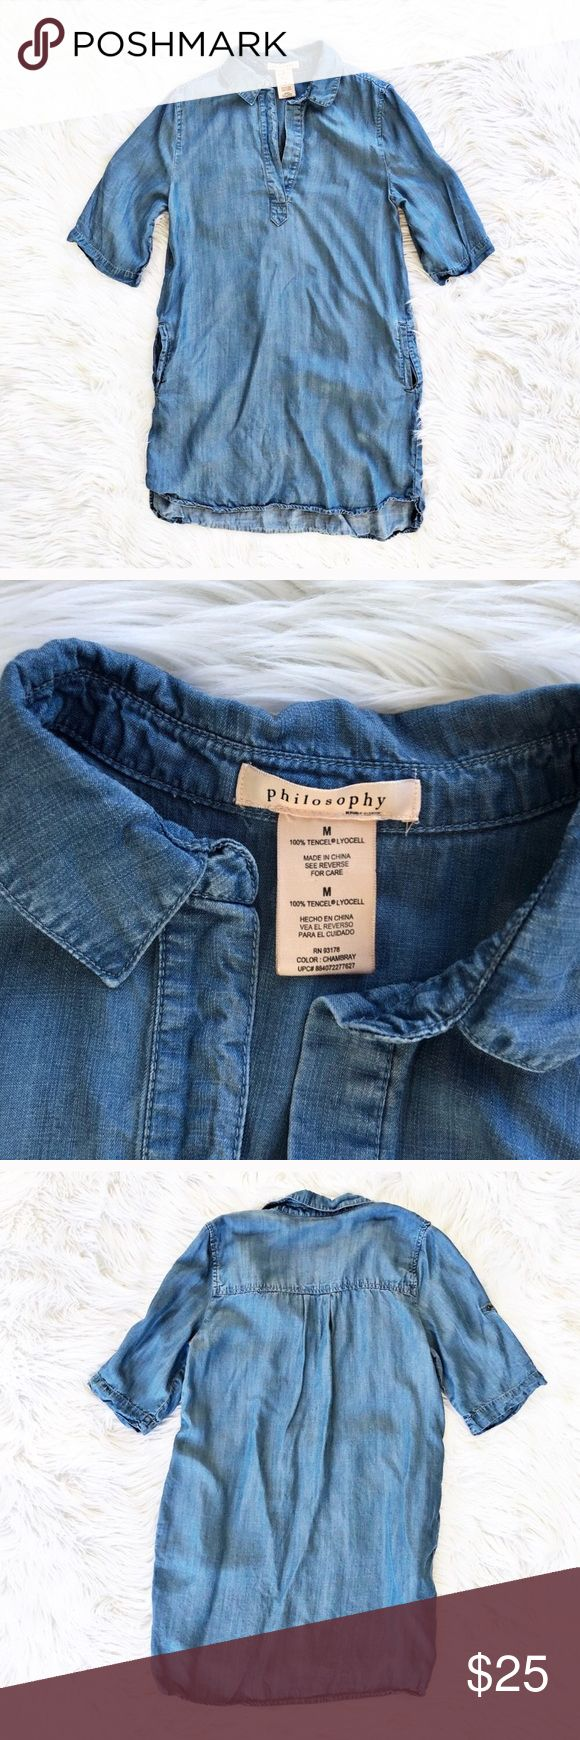 """Philosophy chambray shirt dress Classic chambray shift dress, size medium from Philosophy. Sleeves can be rolled back and buttoned to a shorter length. Excellent condition. Flat measurements are bust 20"""", waist 21"""", hips 22"""", length 34"""". Philosophy Dresses Mini"""